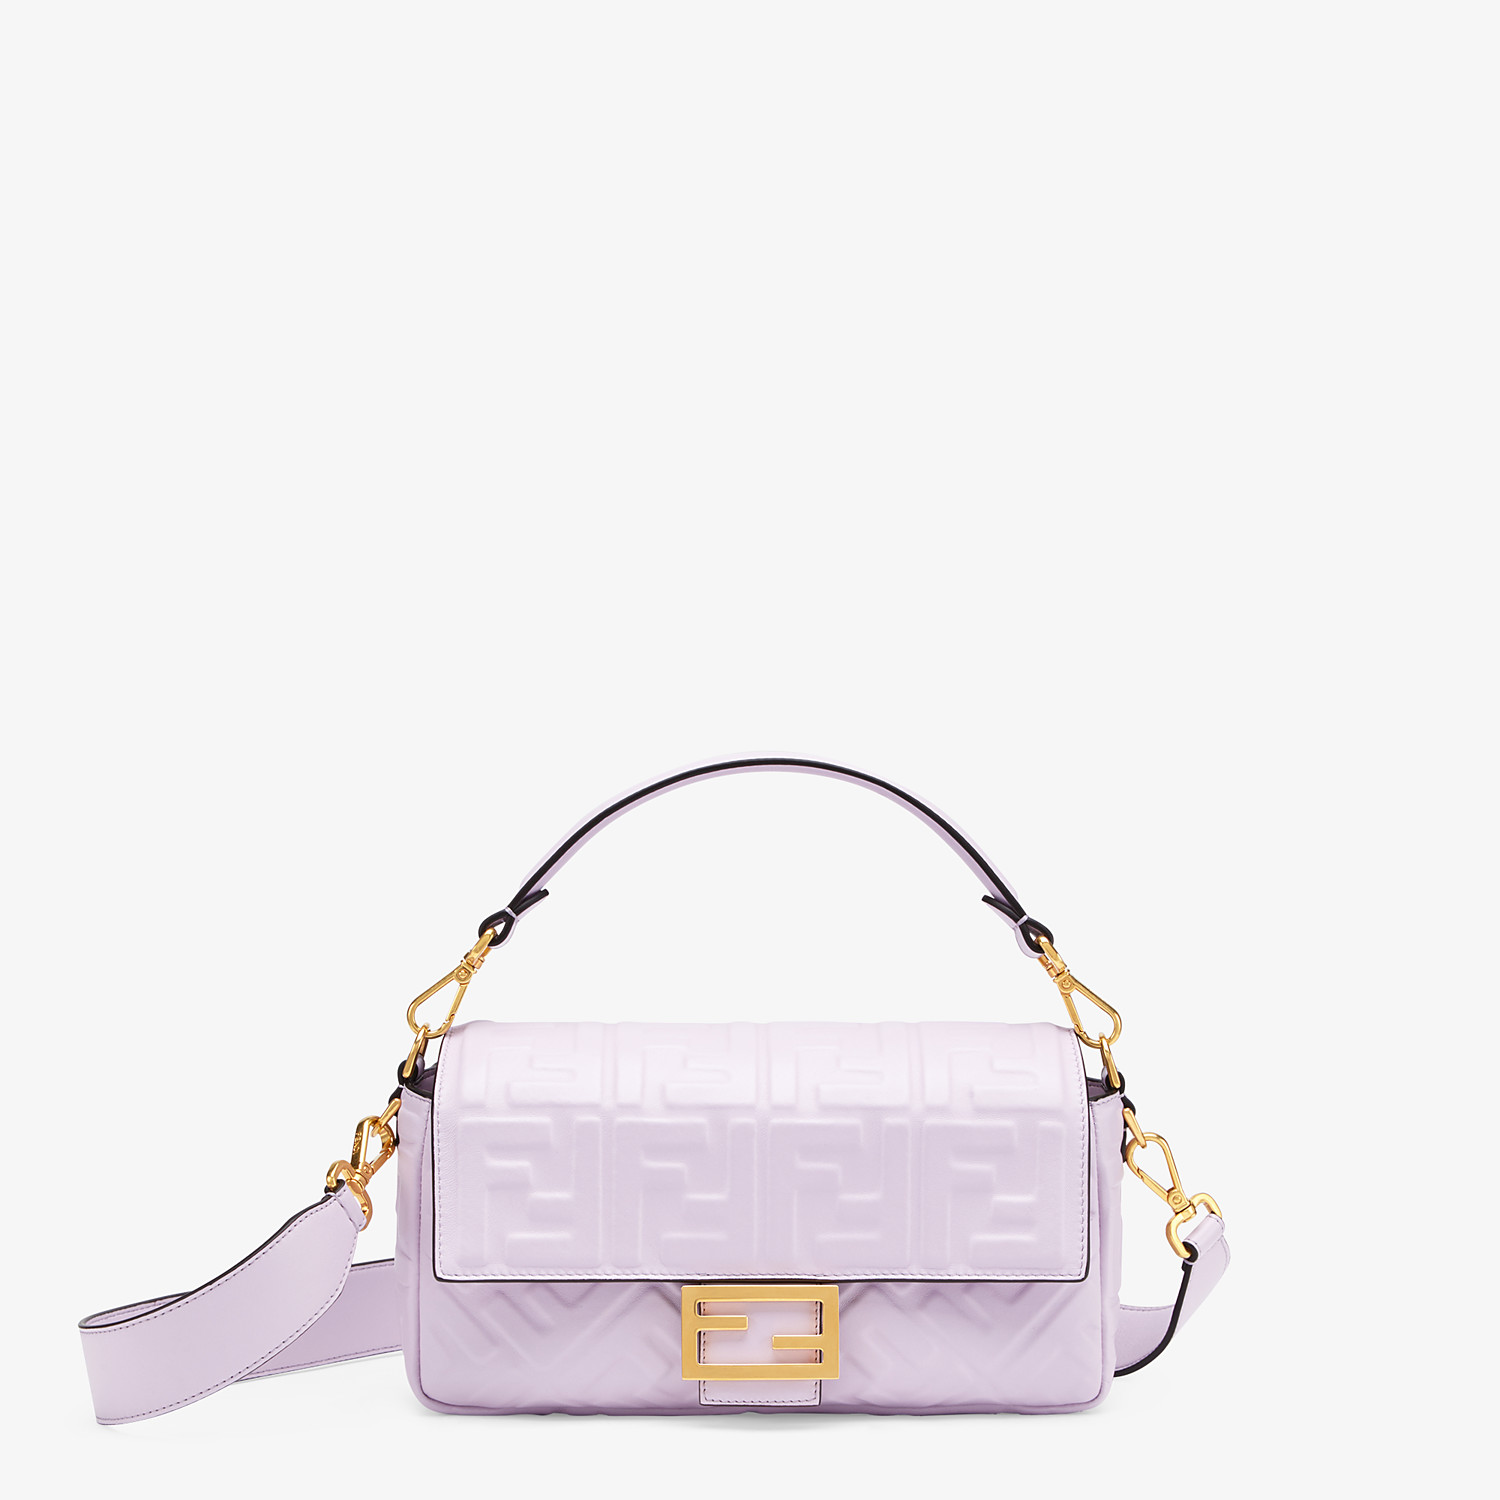 FENDI BAGUETTE - Lilac nappa leather FF Signature bag - view 1 detail